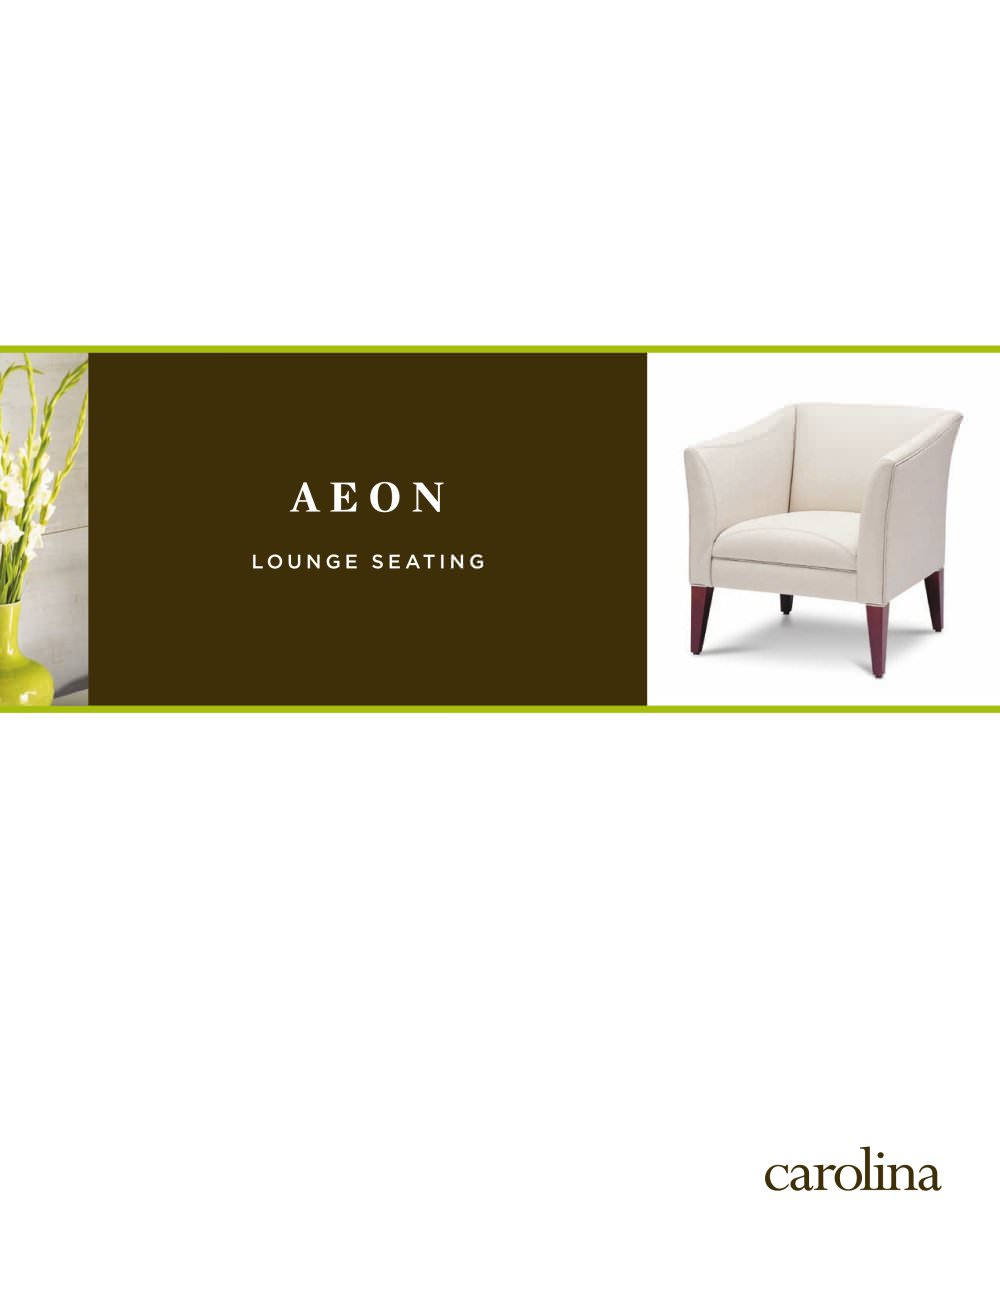 Exceptional Lounge:AEON   1 / 2 Pages